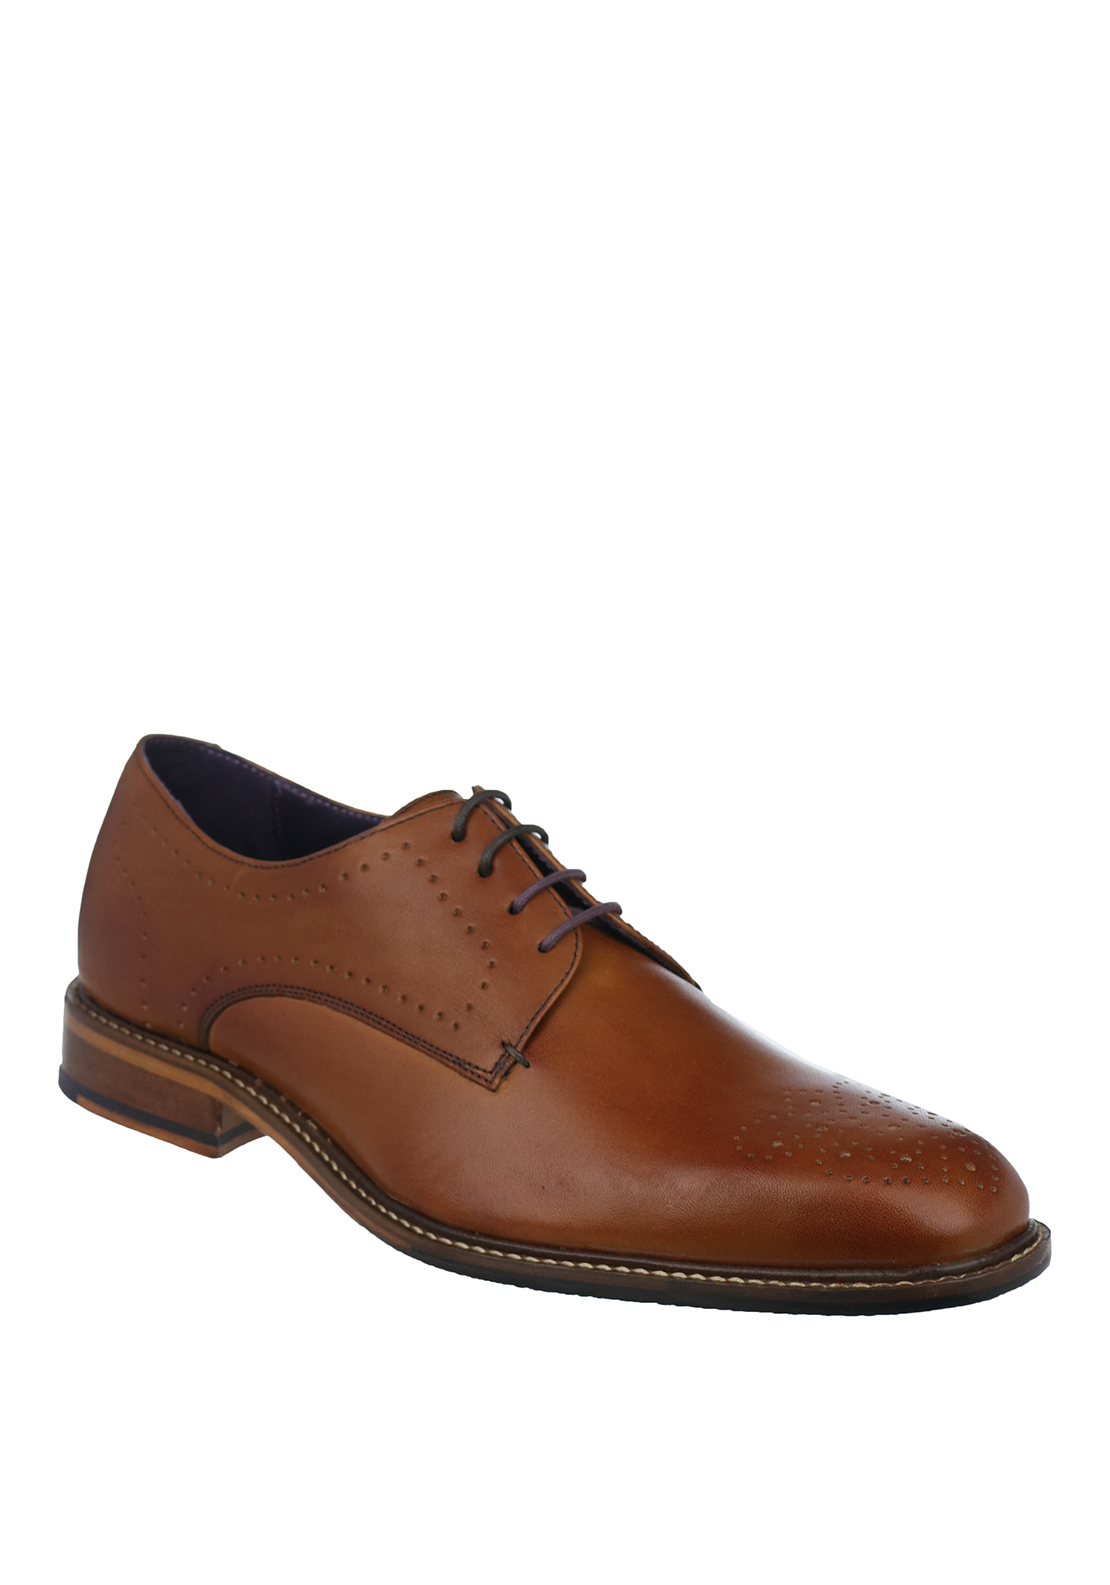 Ted Baker Mens Marar Leather Shoe, Tan